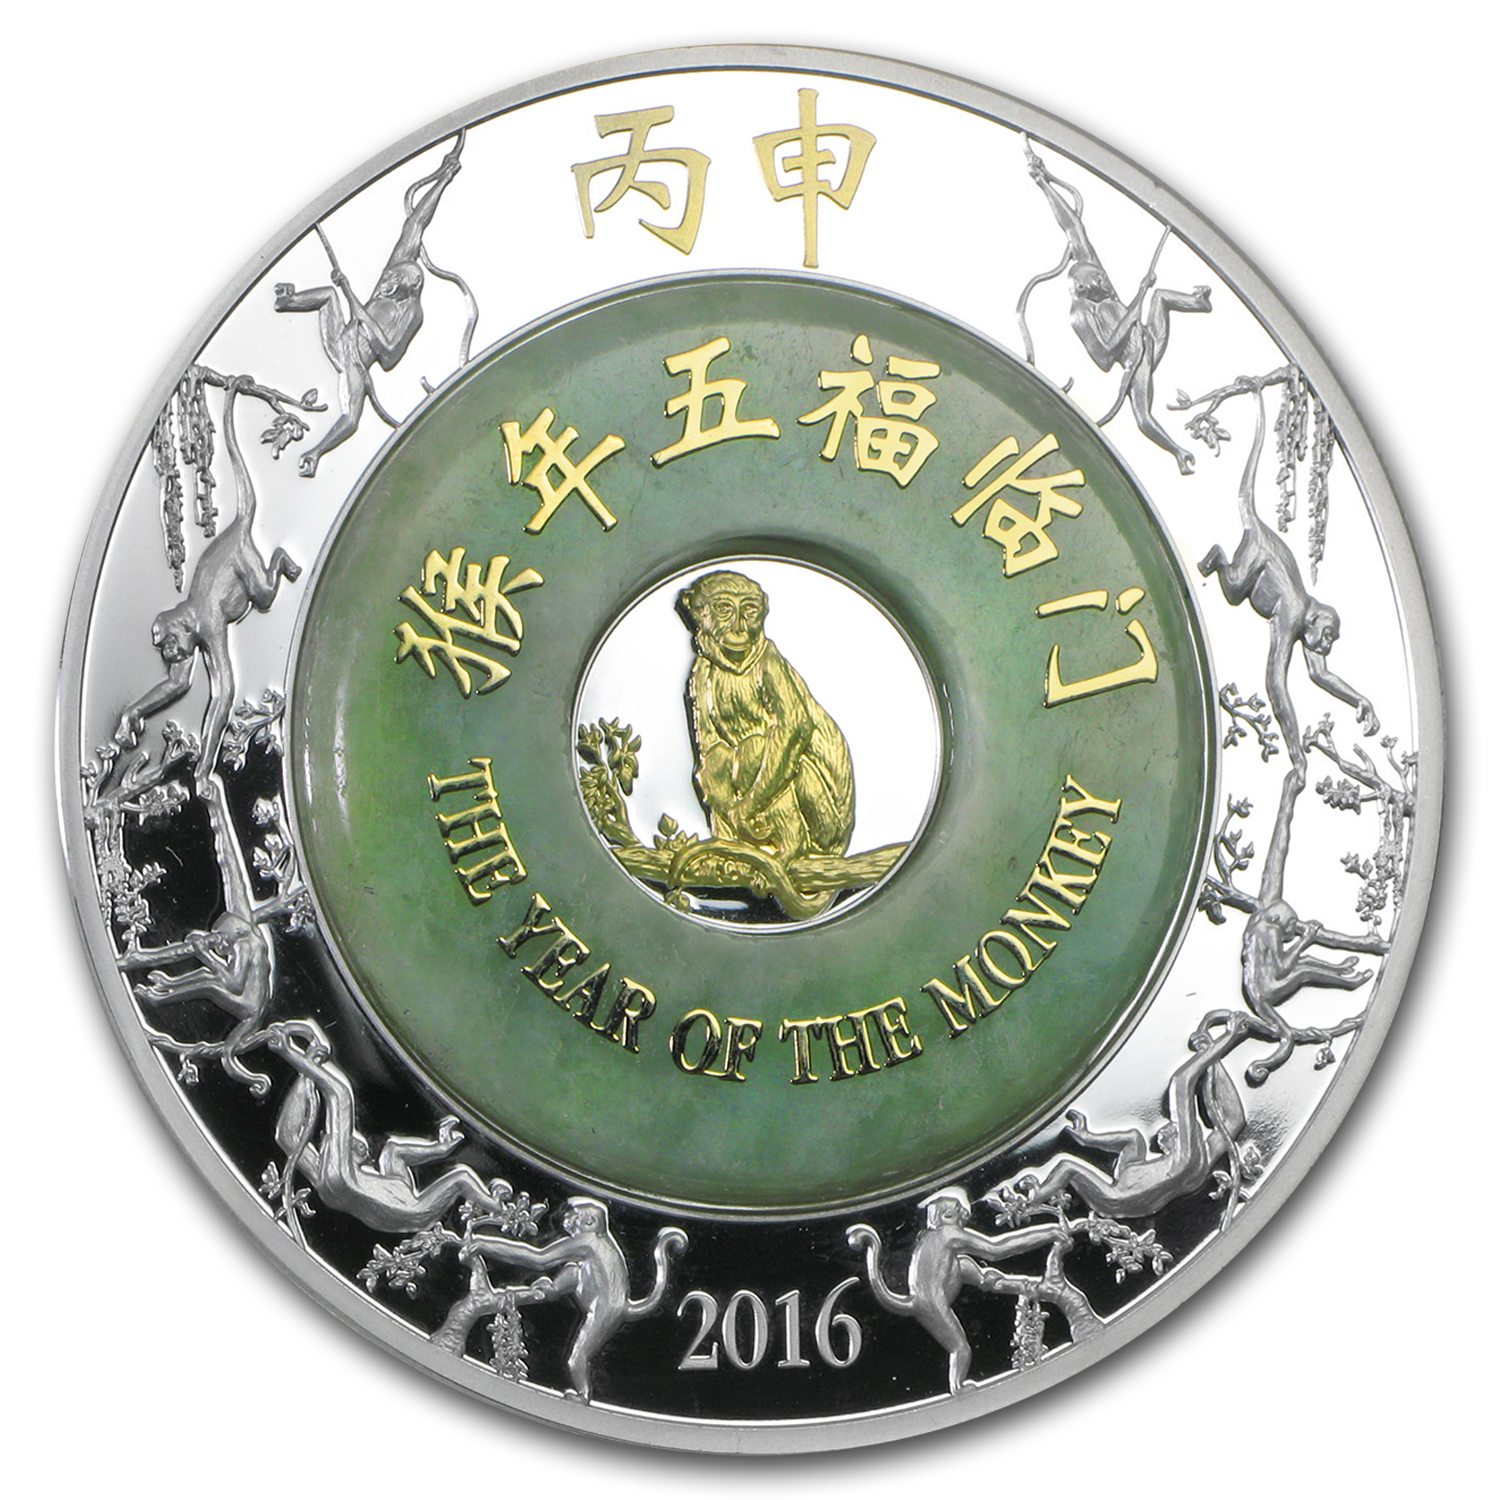 2016 Laos 2 oz Silver & Jade Year of the Monkey Proof